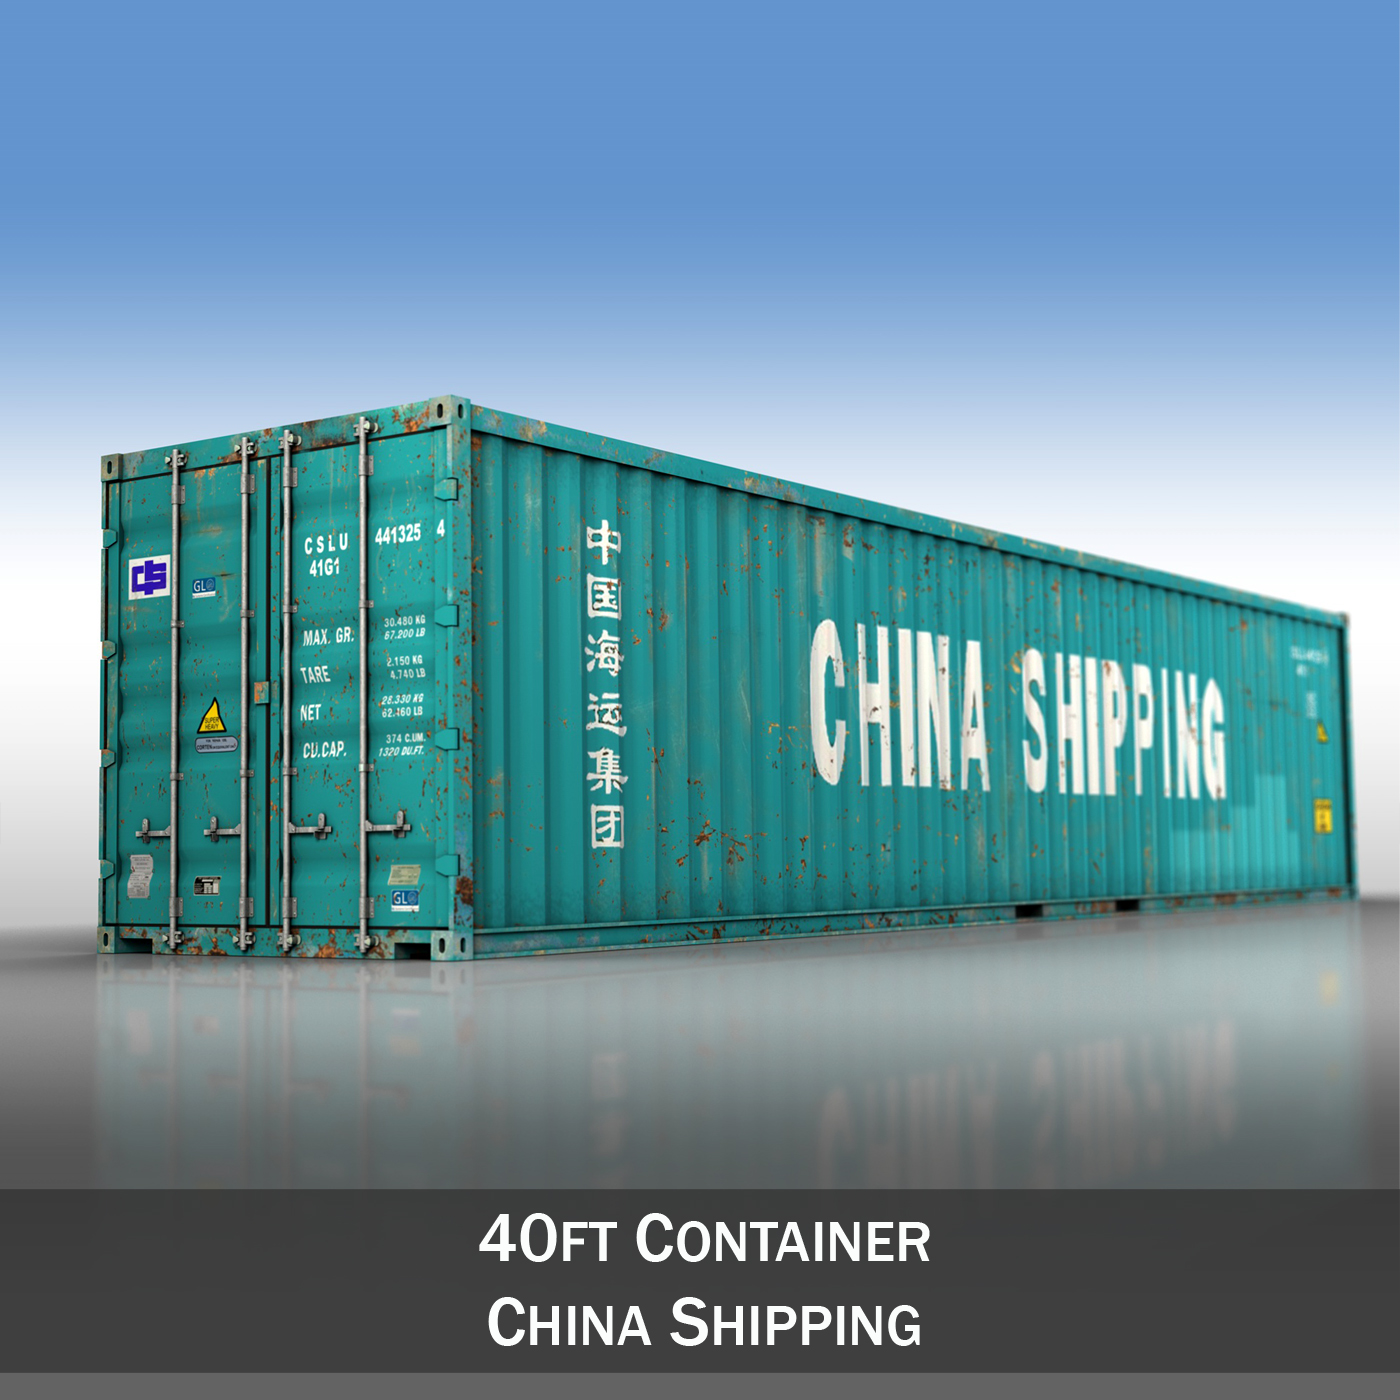 40ft shipping container – china shipping 3d model 3ds fbx lwo lw lws obj c4d 264923